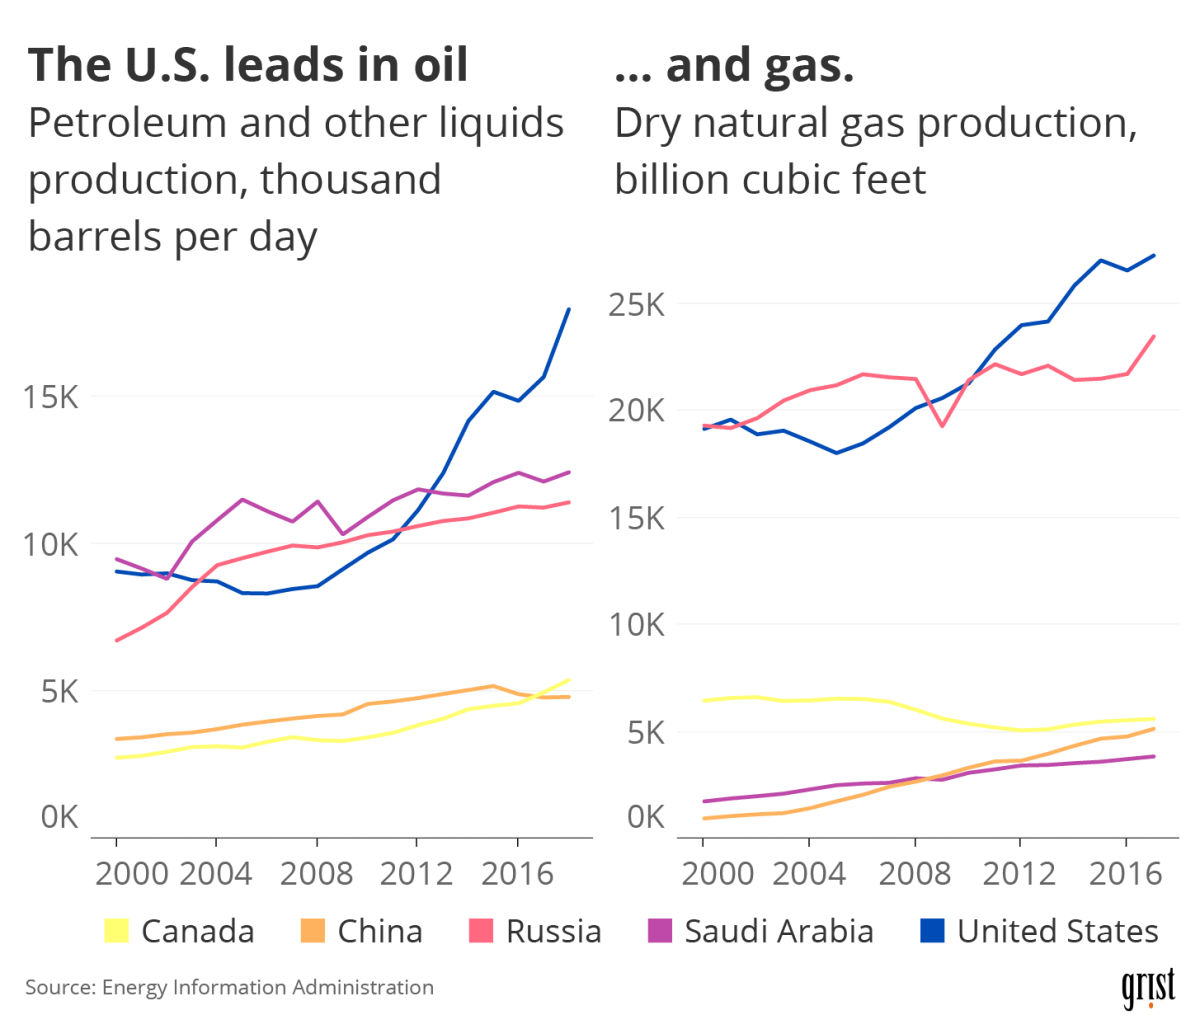 Two line charts comparing oil and gas production between the United States and other top producers between 2000 and 2018. The United States is the top producer in recent years.